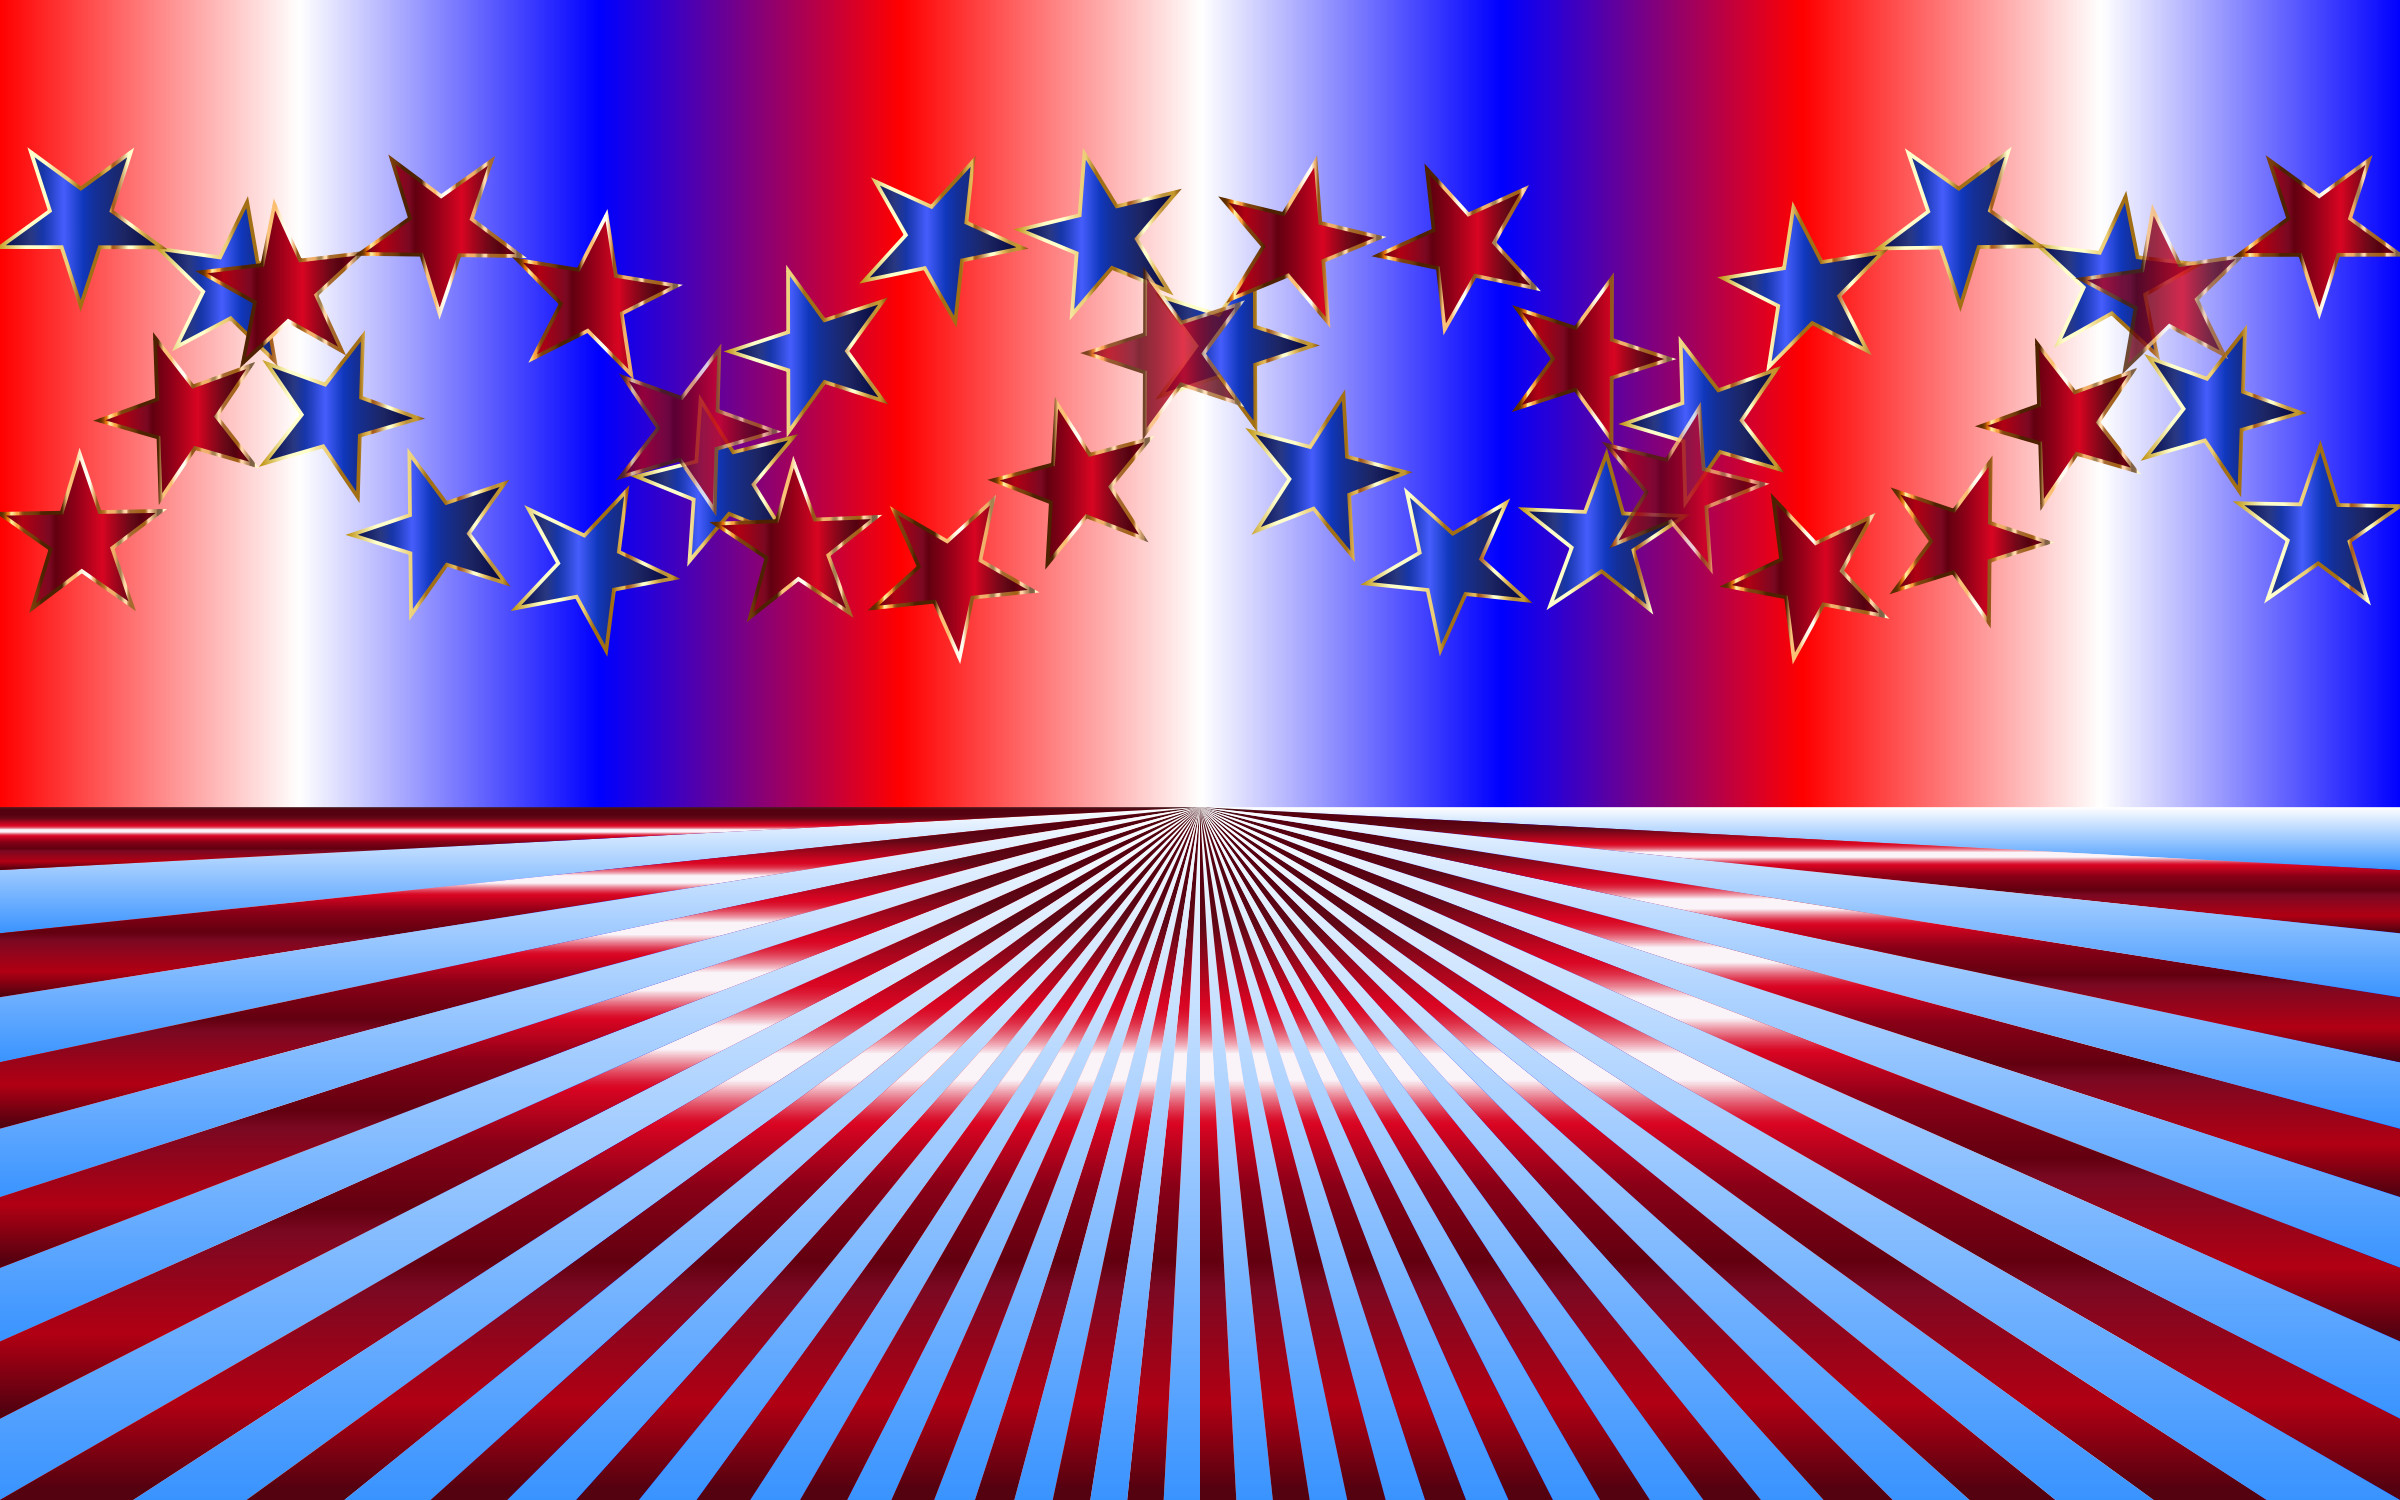 Red White and Blue Backgrounds ·① - photo#4